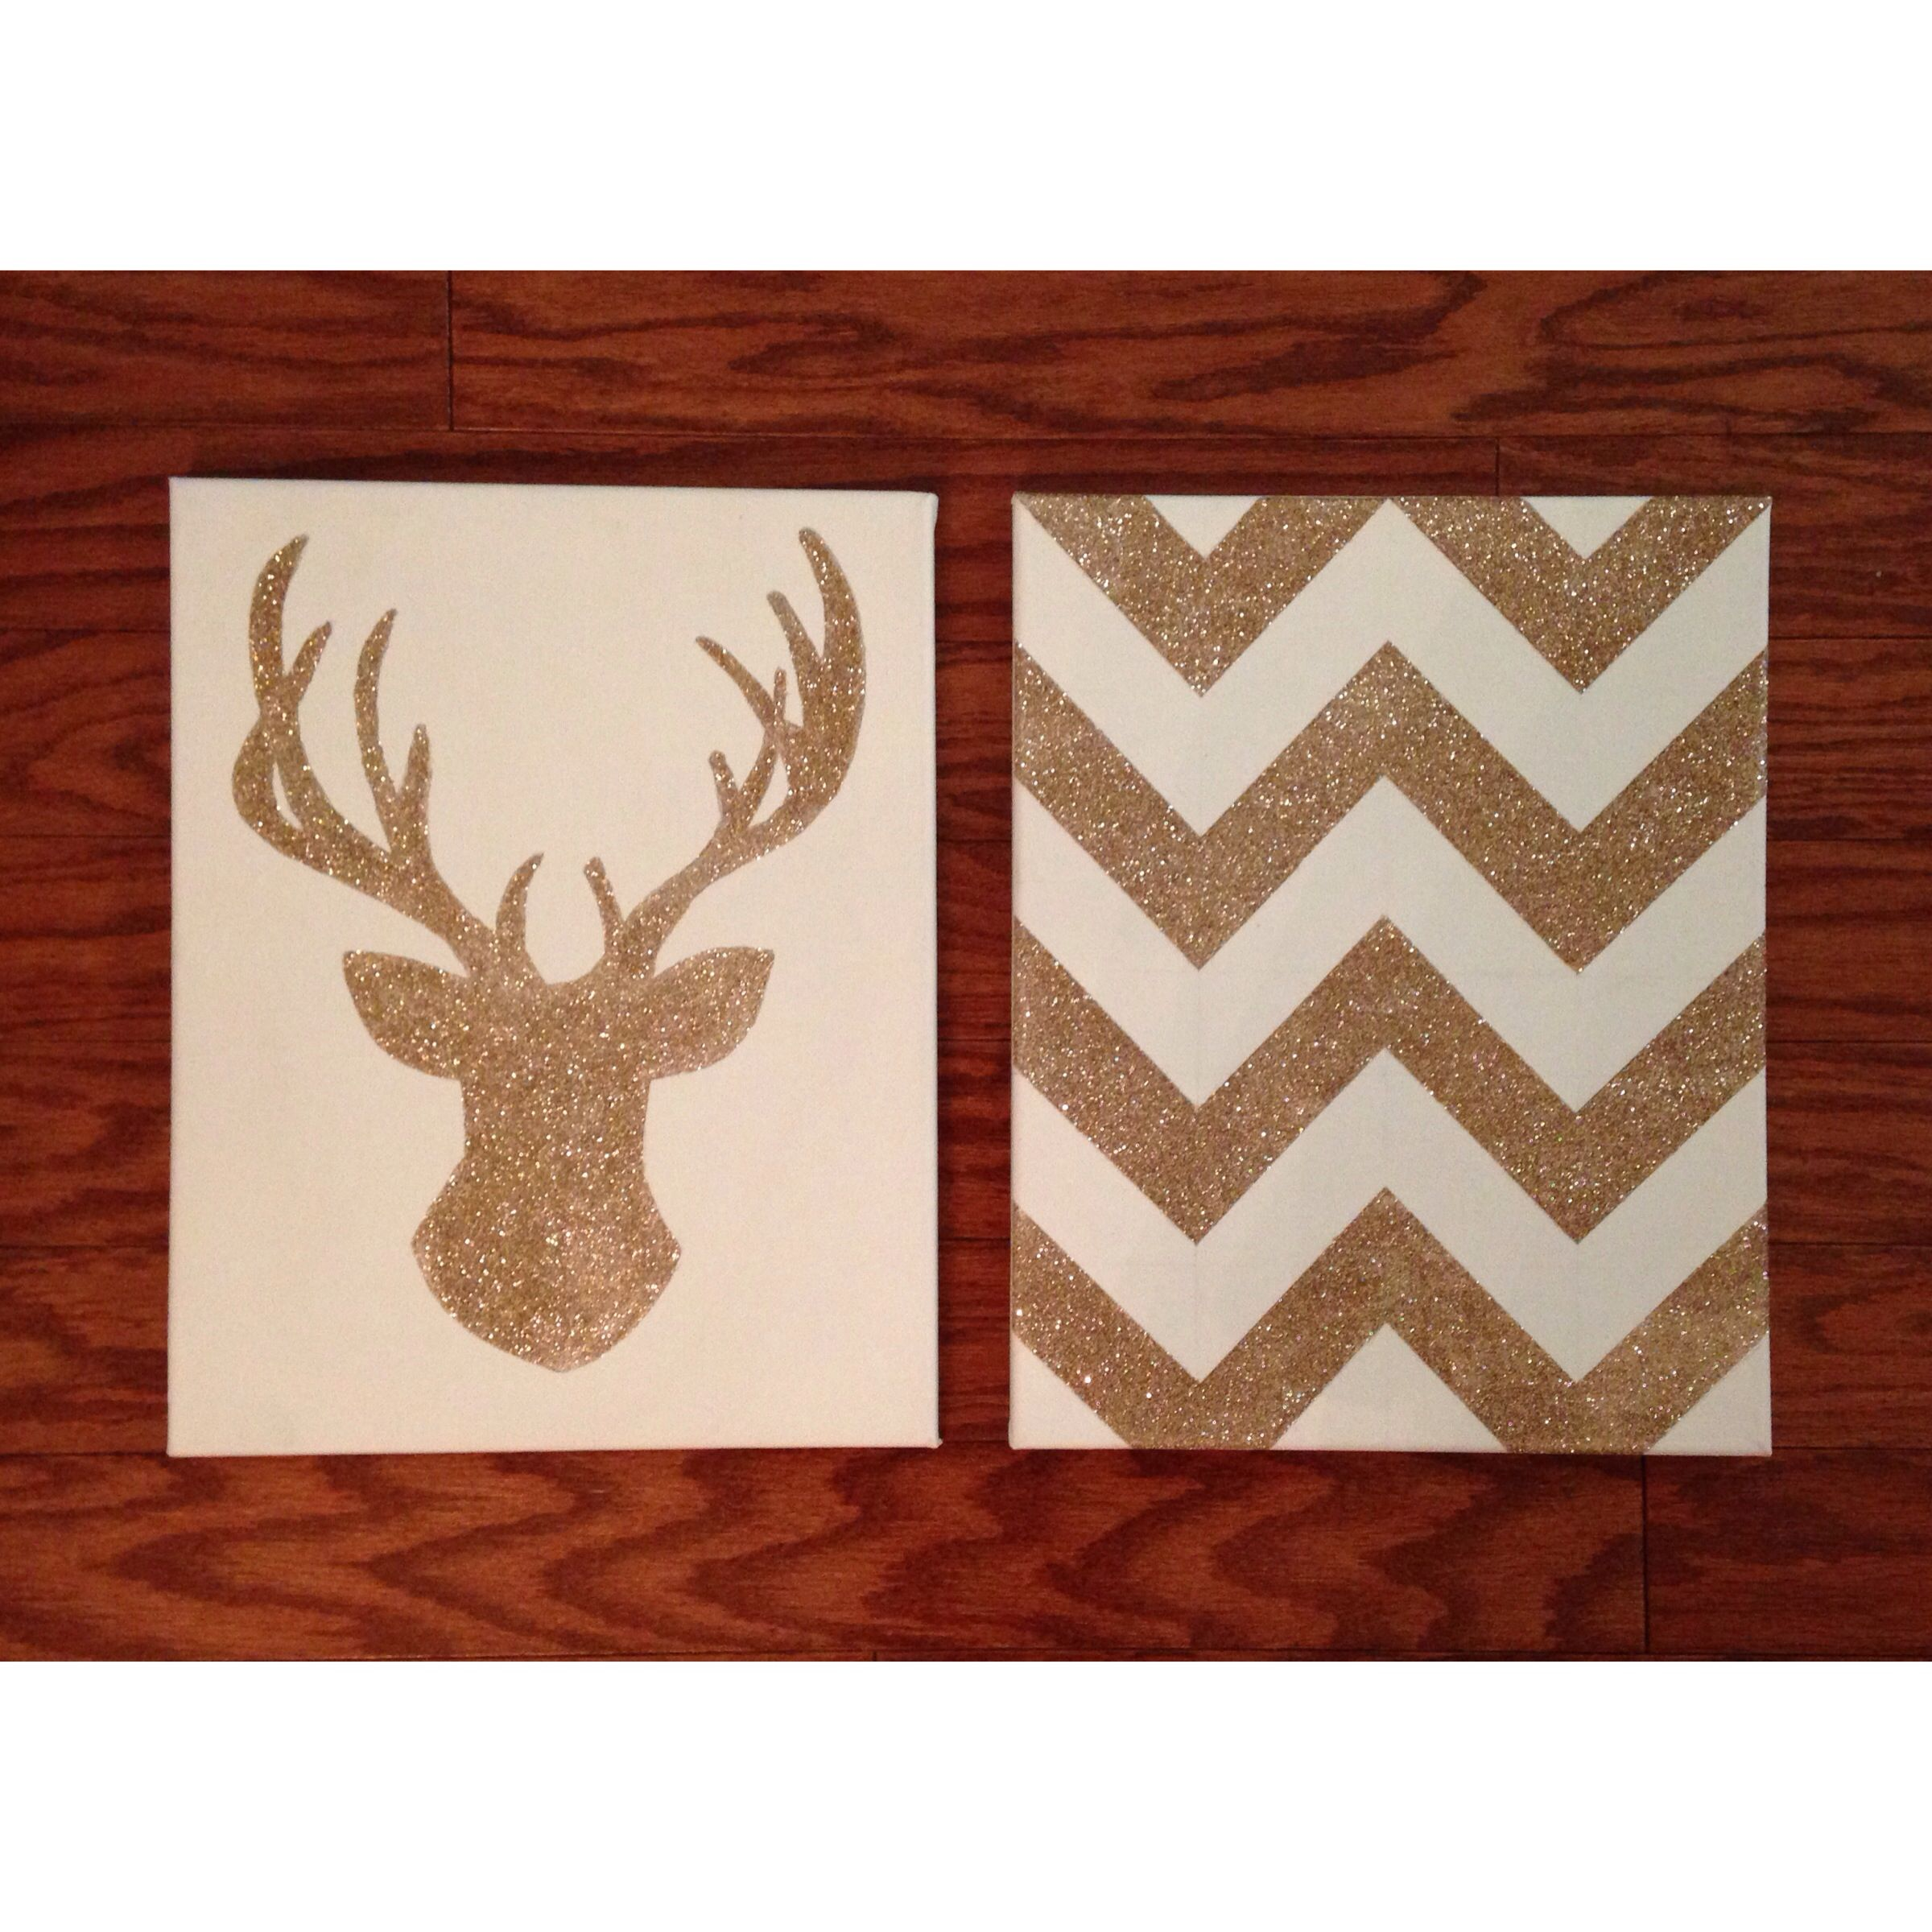 Diy Glitter Chevron Amp Deer Head On Canvas Inspired By